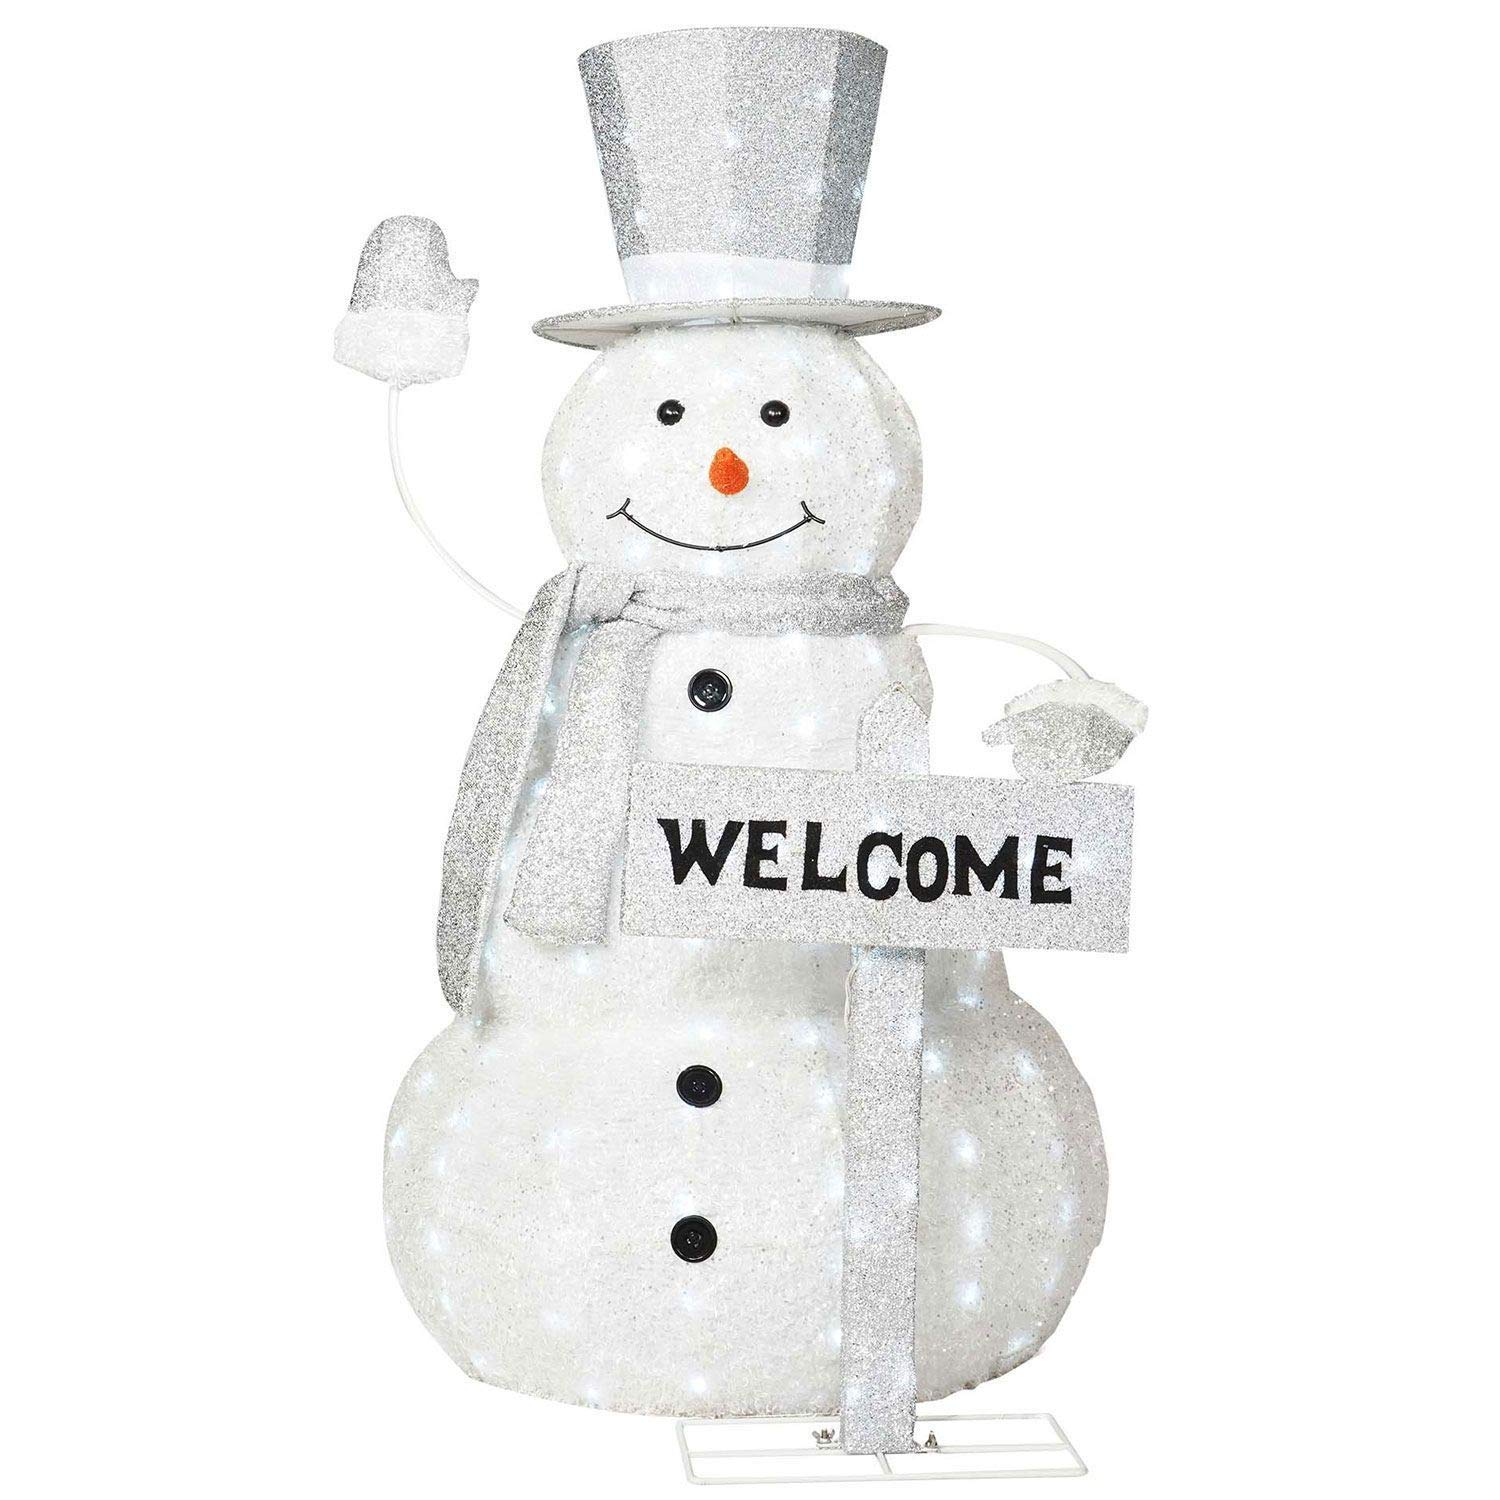 Amazon.com: Life Size Cool White Lighted Snowman Sculpture Outdoor ...